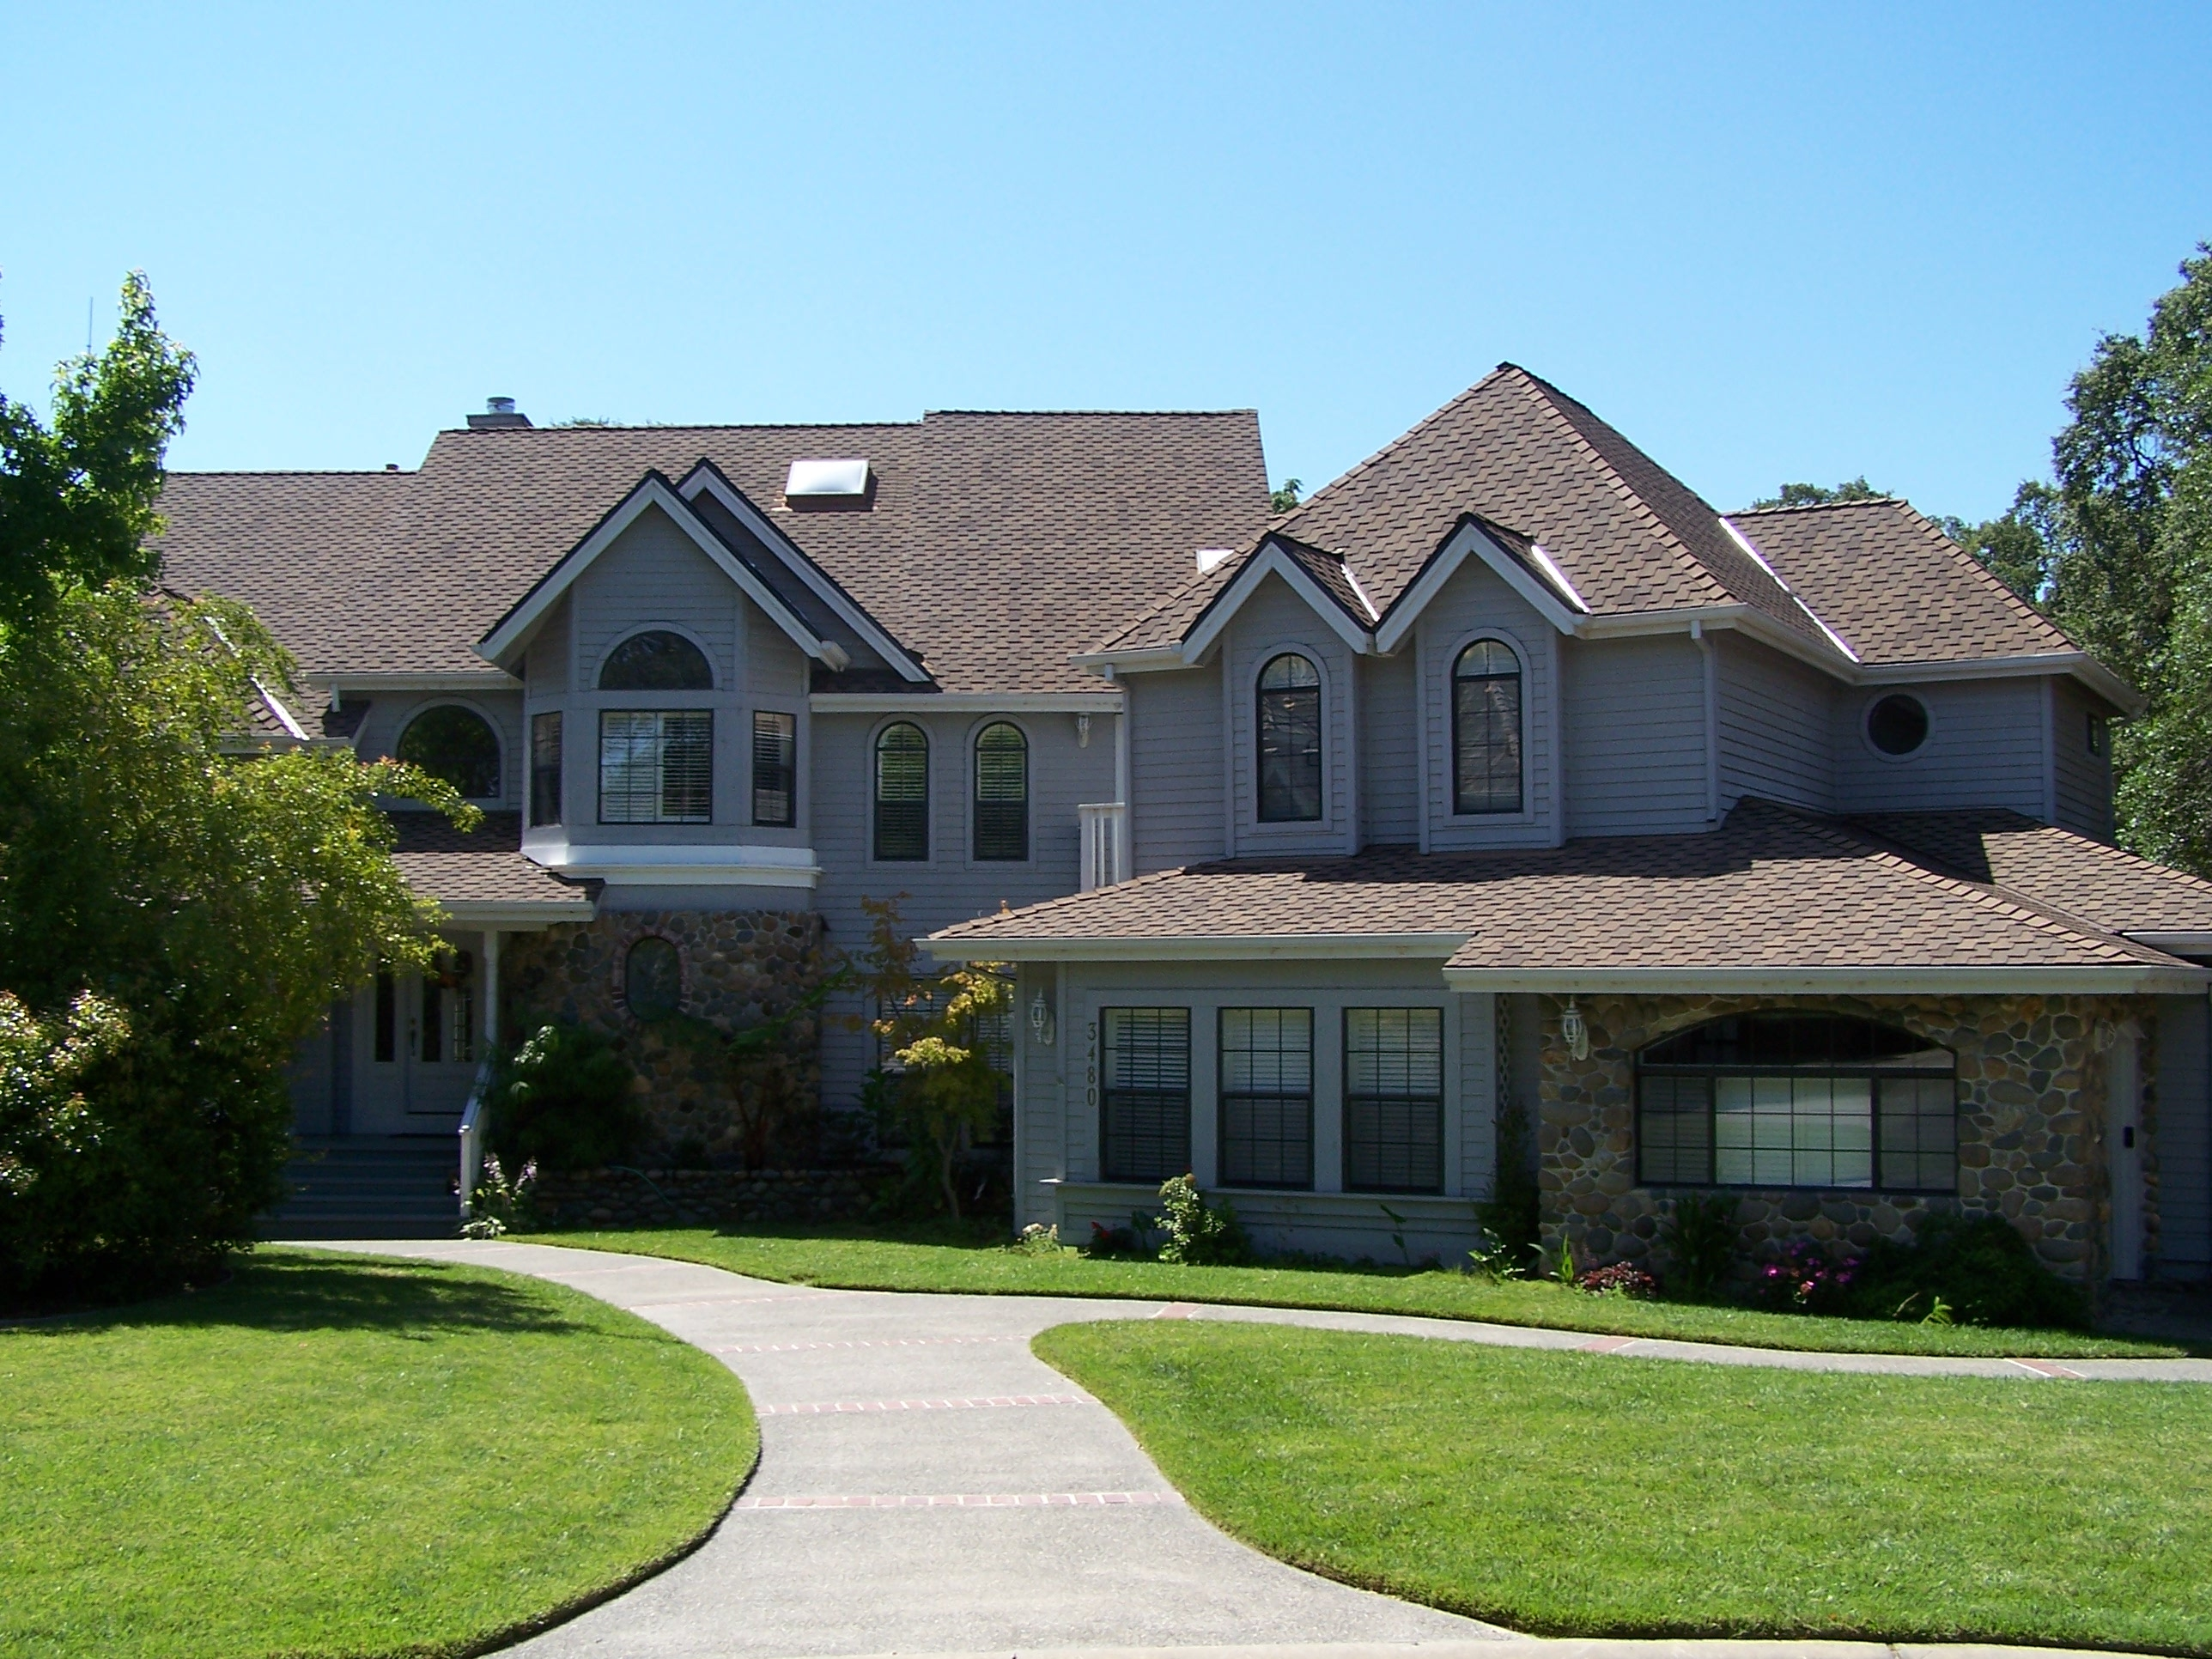 Northern California Roofing Co Vacaville Ca 95688